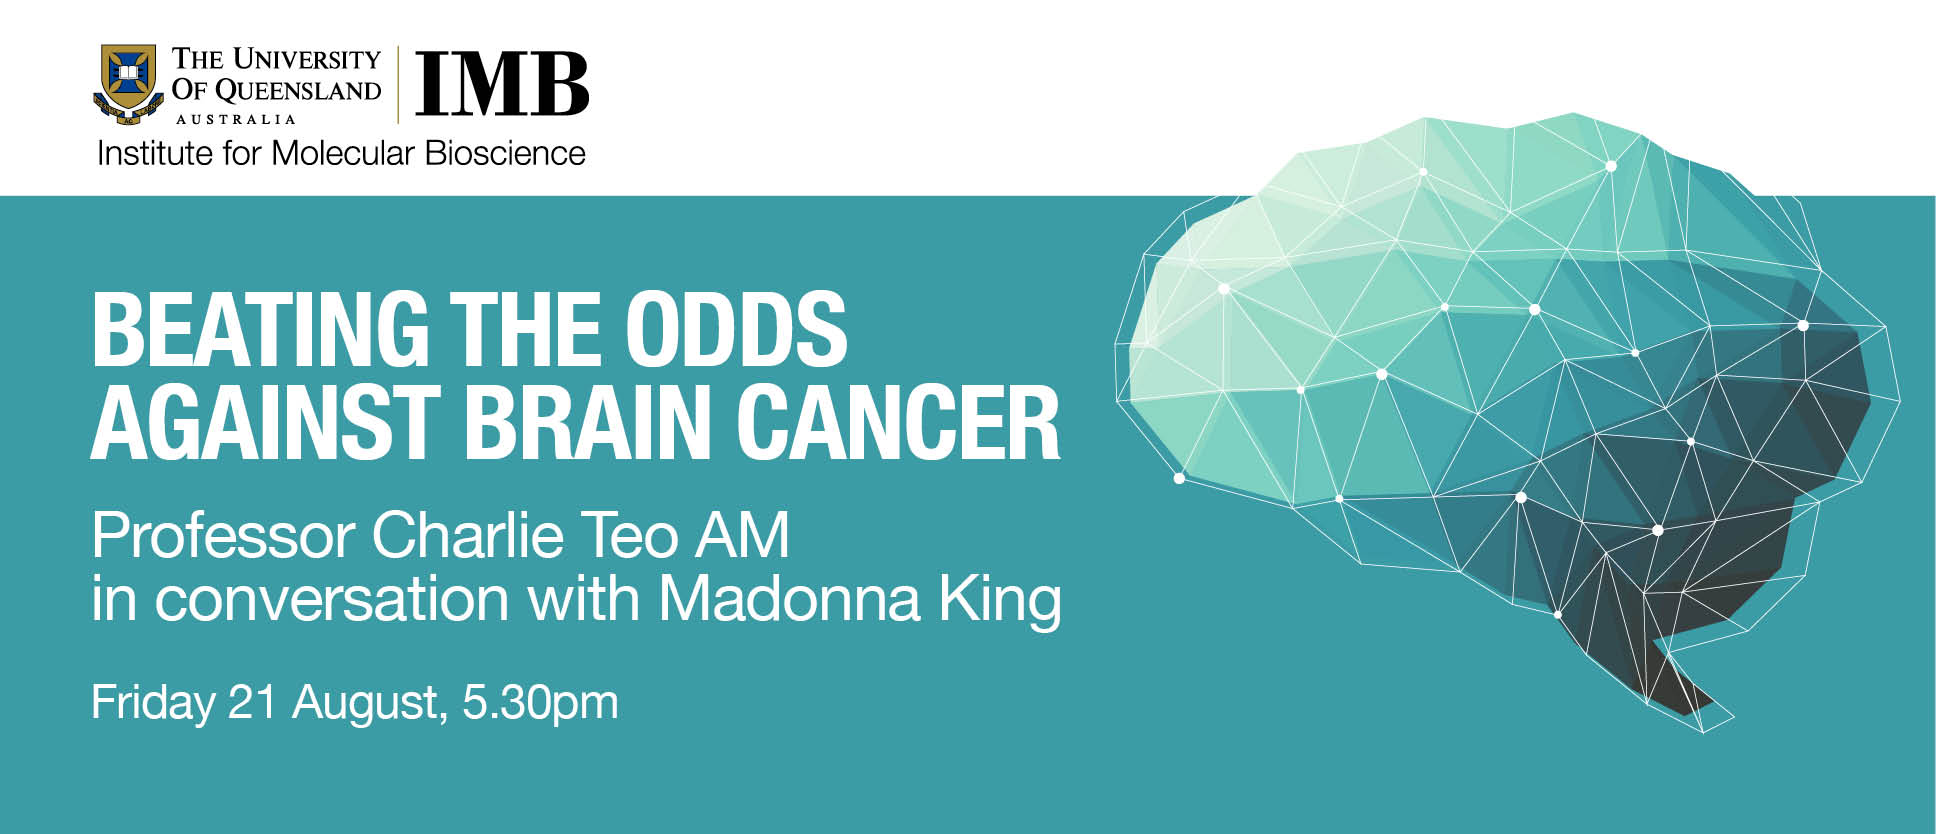 Beating the odds against brain cancer: A/Prof Charlie Teo AM in conversation with Madonna King